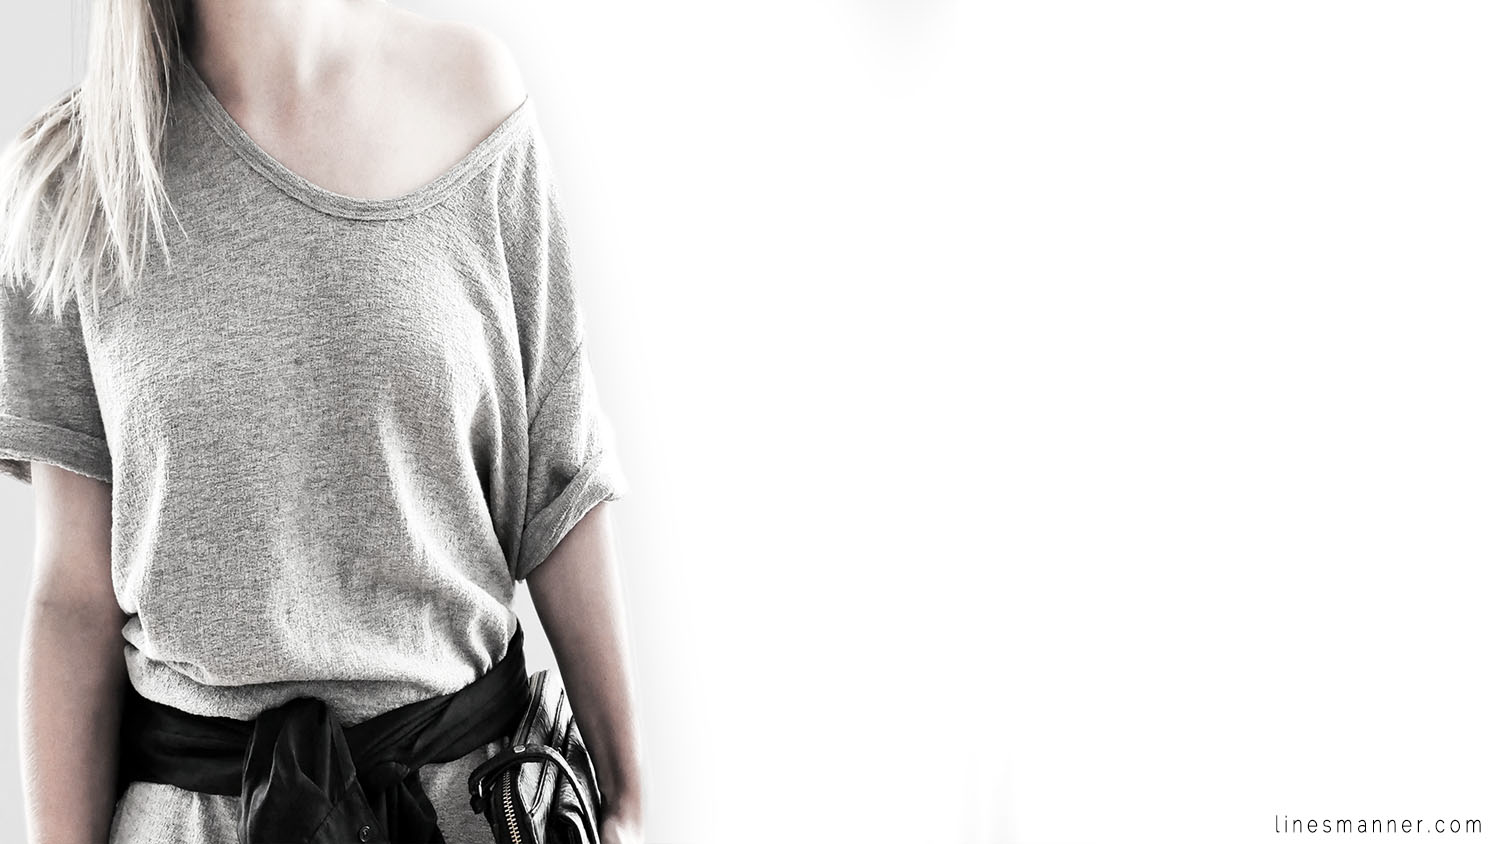 Lines-Manner-Remind-2015-Minimal-Essential-Outfit-Inspiration-Blog-Timeless-Year-Seasons-Details-Travel-Fashion-Versatile-Clean-Sleek-Quality-41